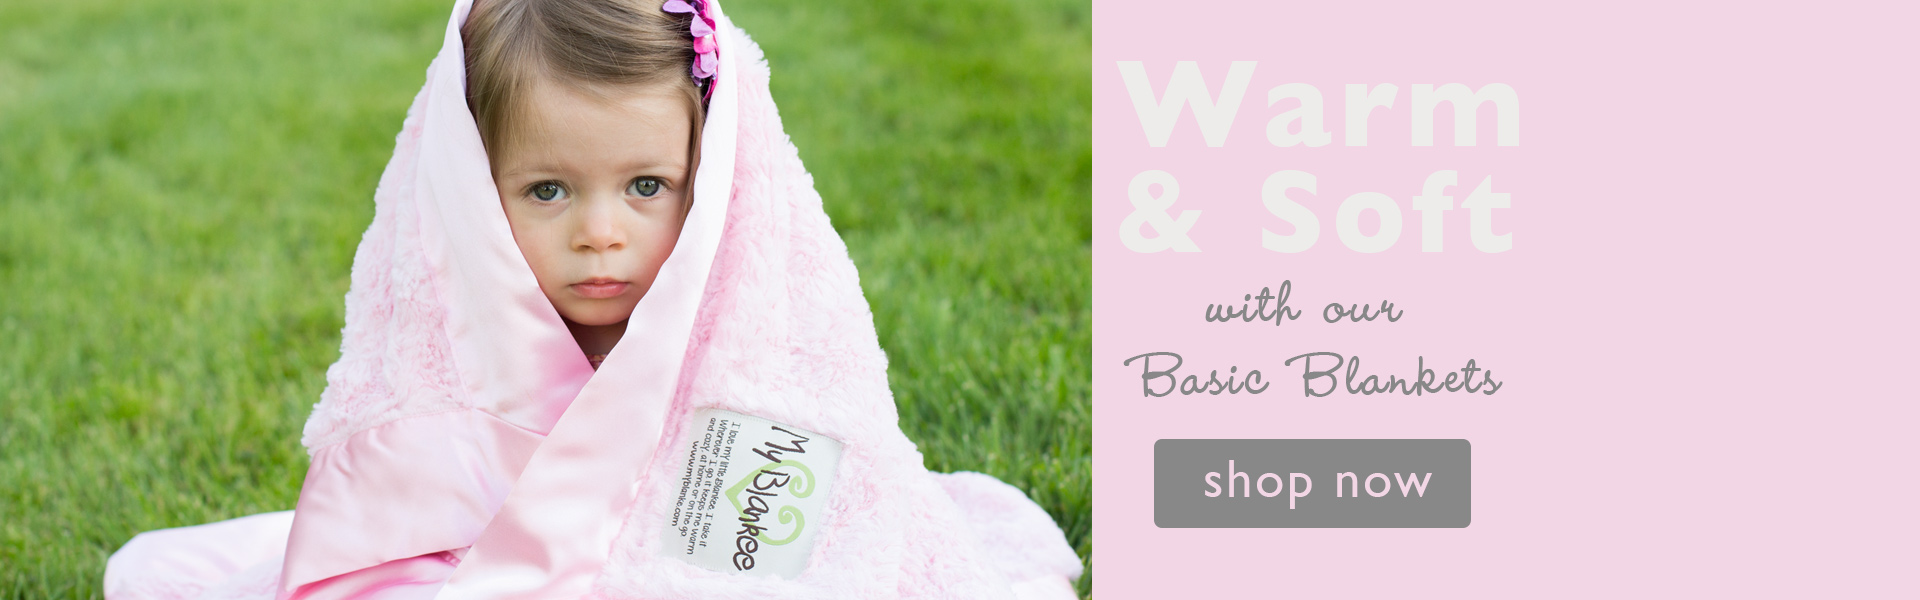 Warm and Soft with our Basic Blankets